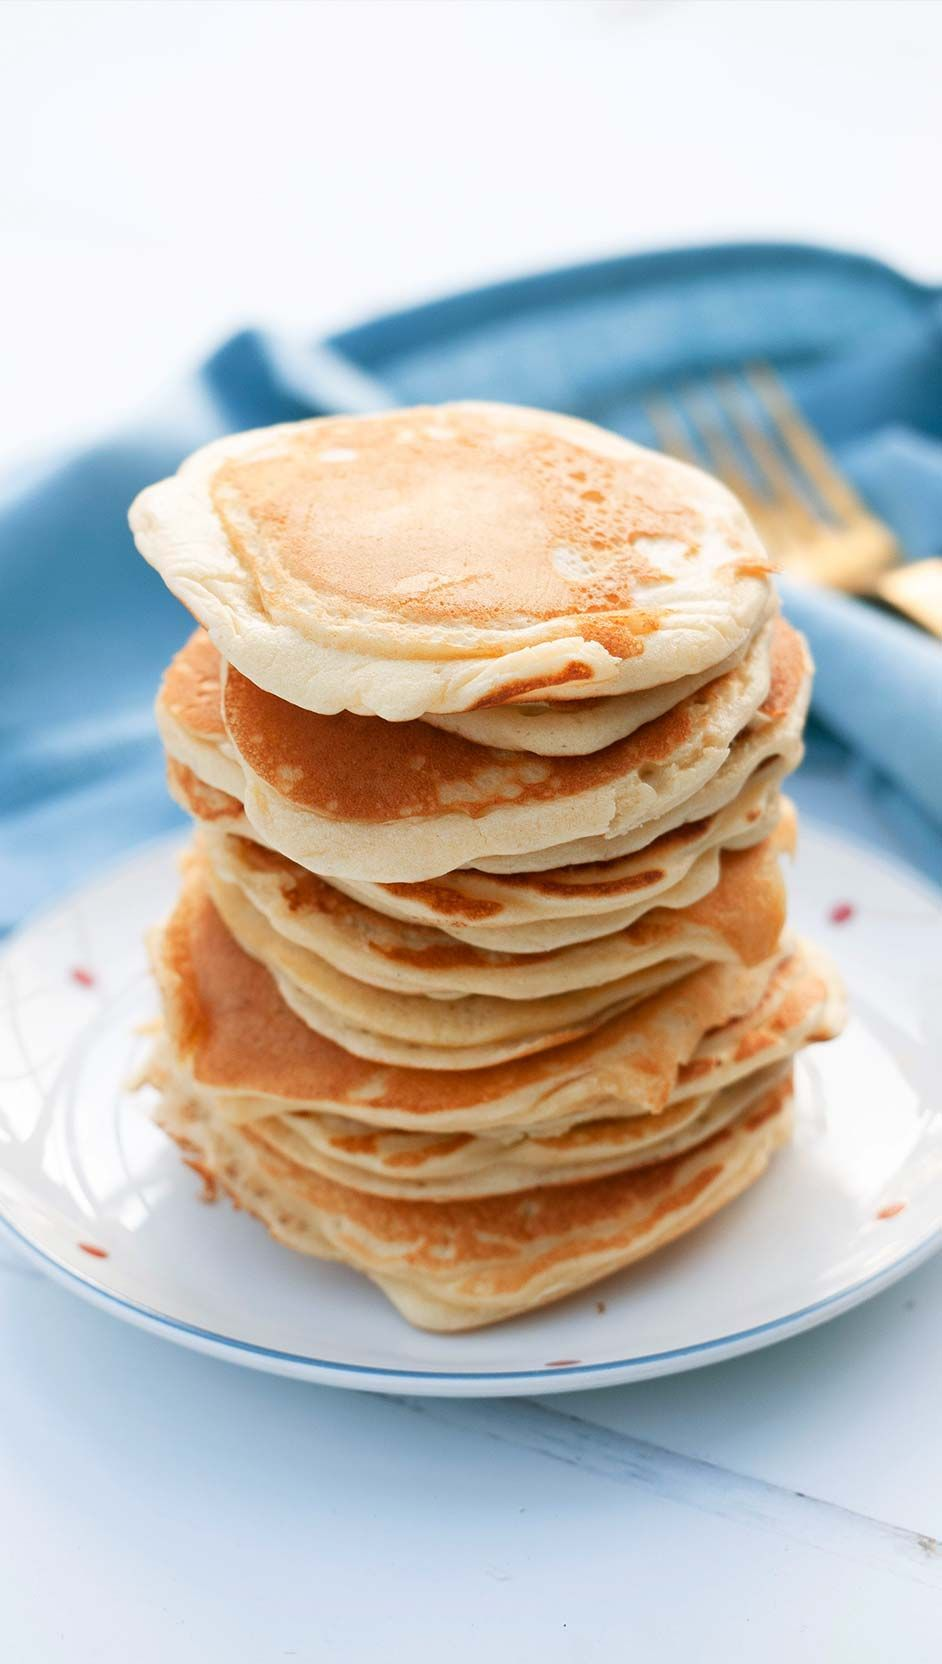 Simple pancakes - delicious! -  Simple, fast pancakes that also taste really good – what more could you want? Create a special br - #buttermilkpancake #delicious #pancakehealthy #pancakes #simple